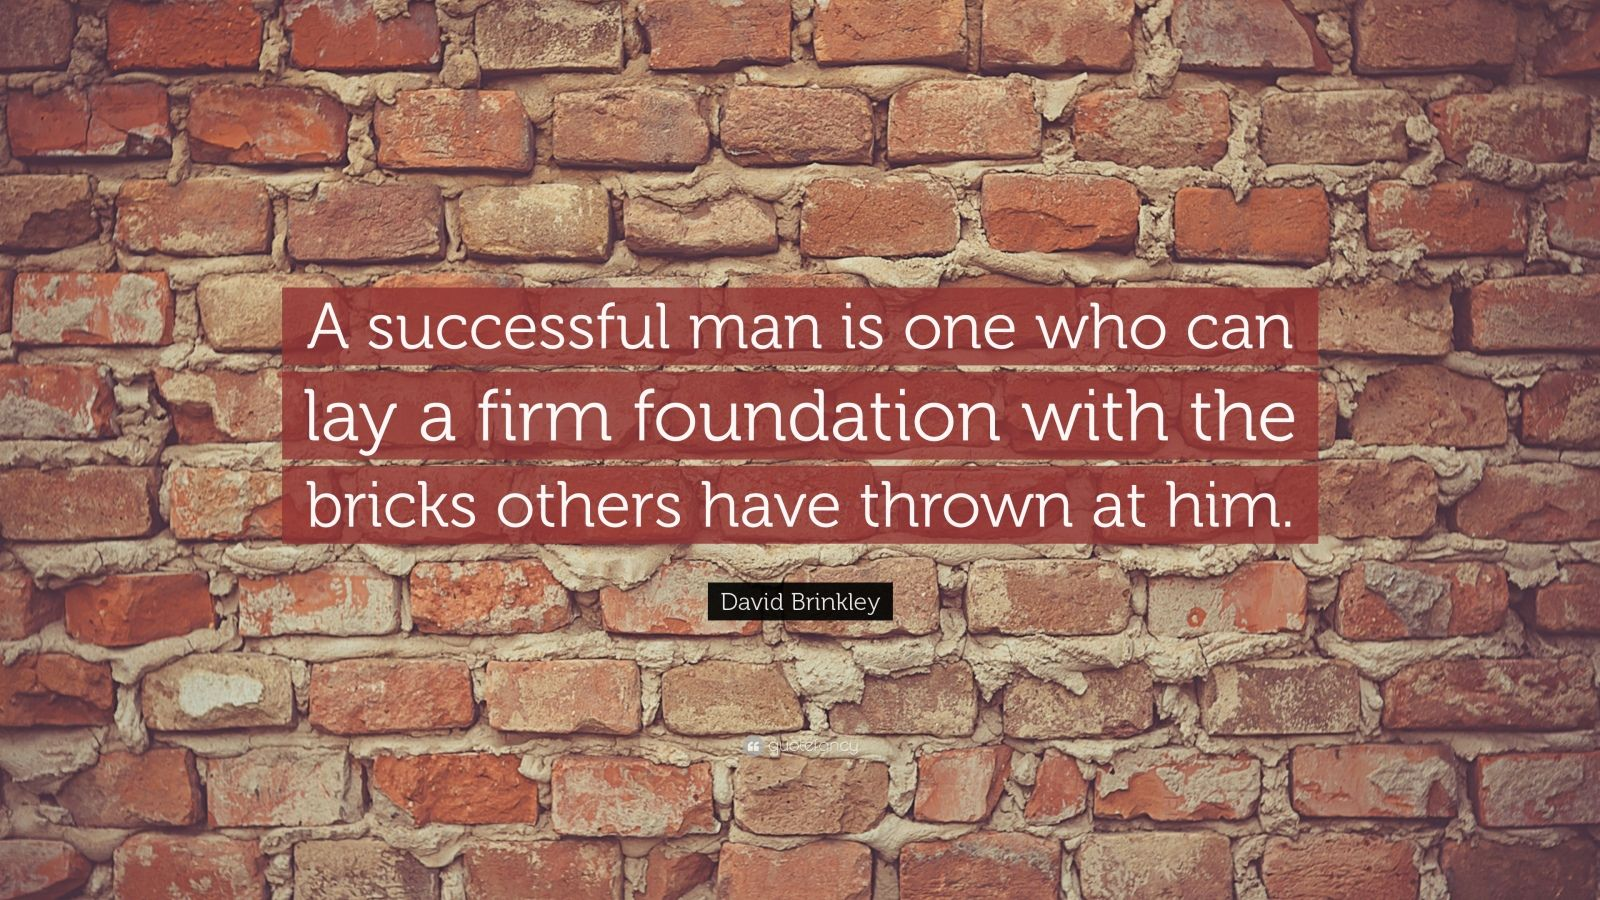 """David Brinkley Quote: """"A successful man is one who can lay a firm foundation with the bricks others have thrown at him."""""""